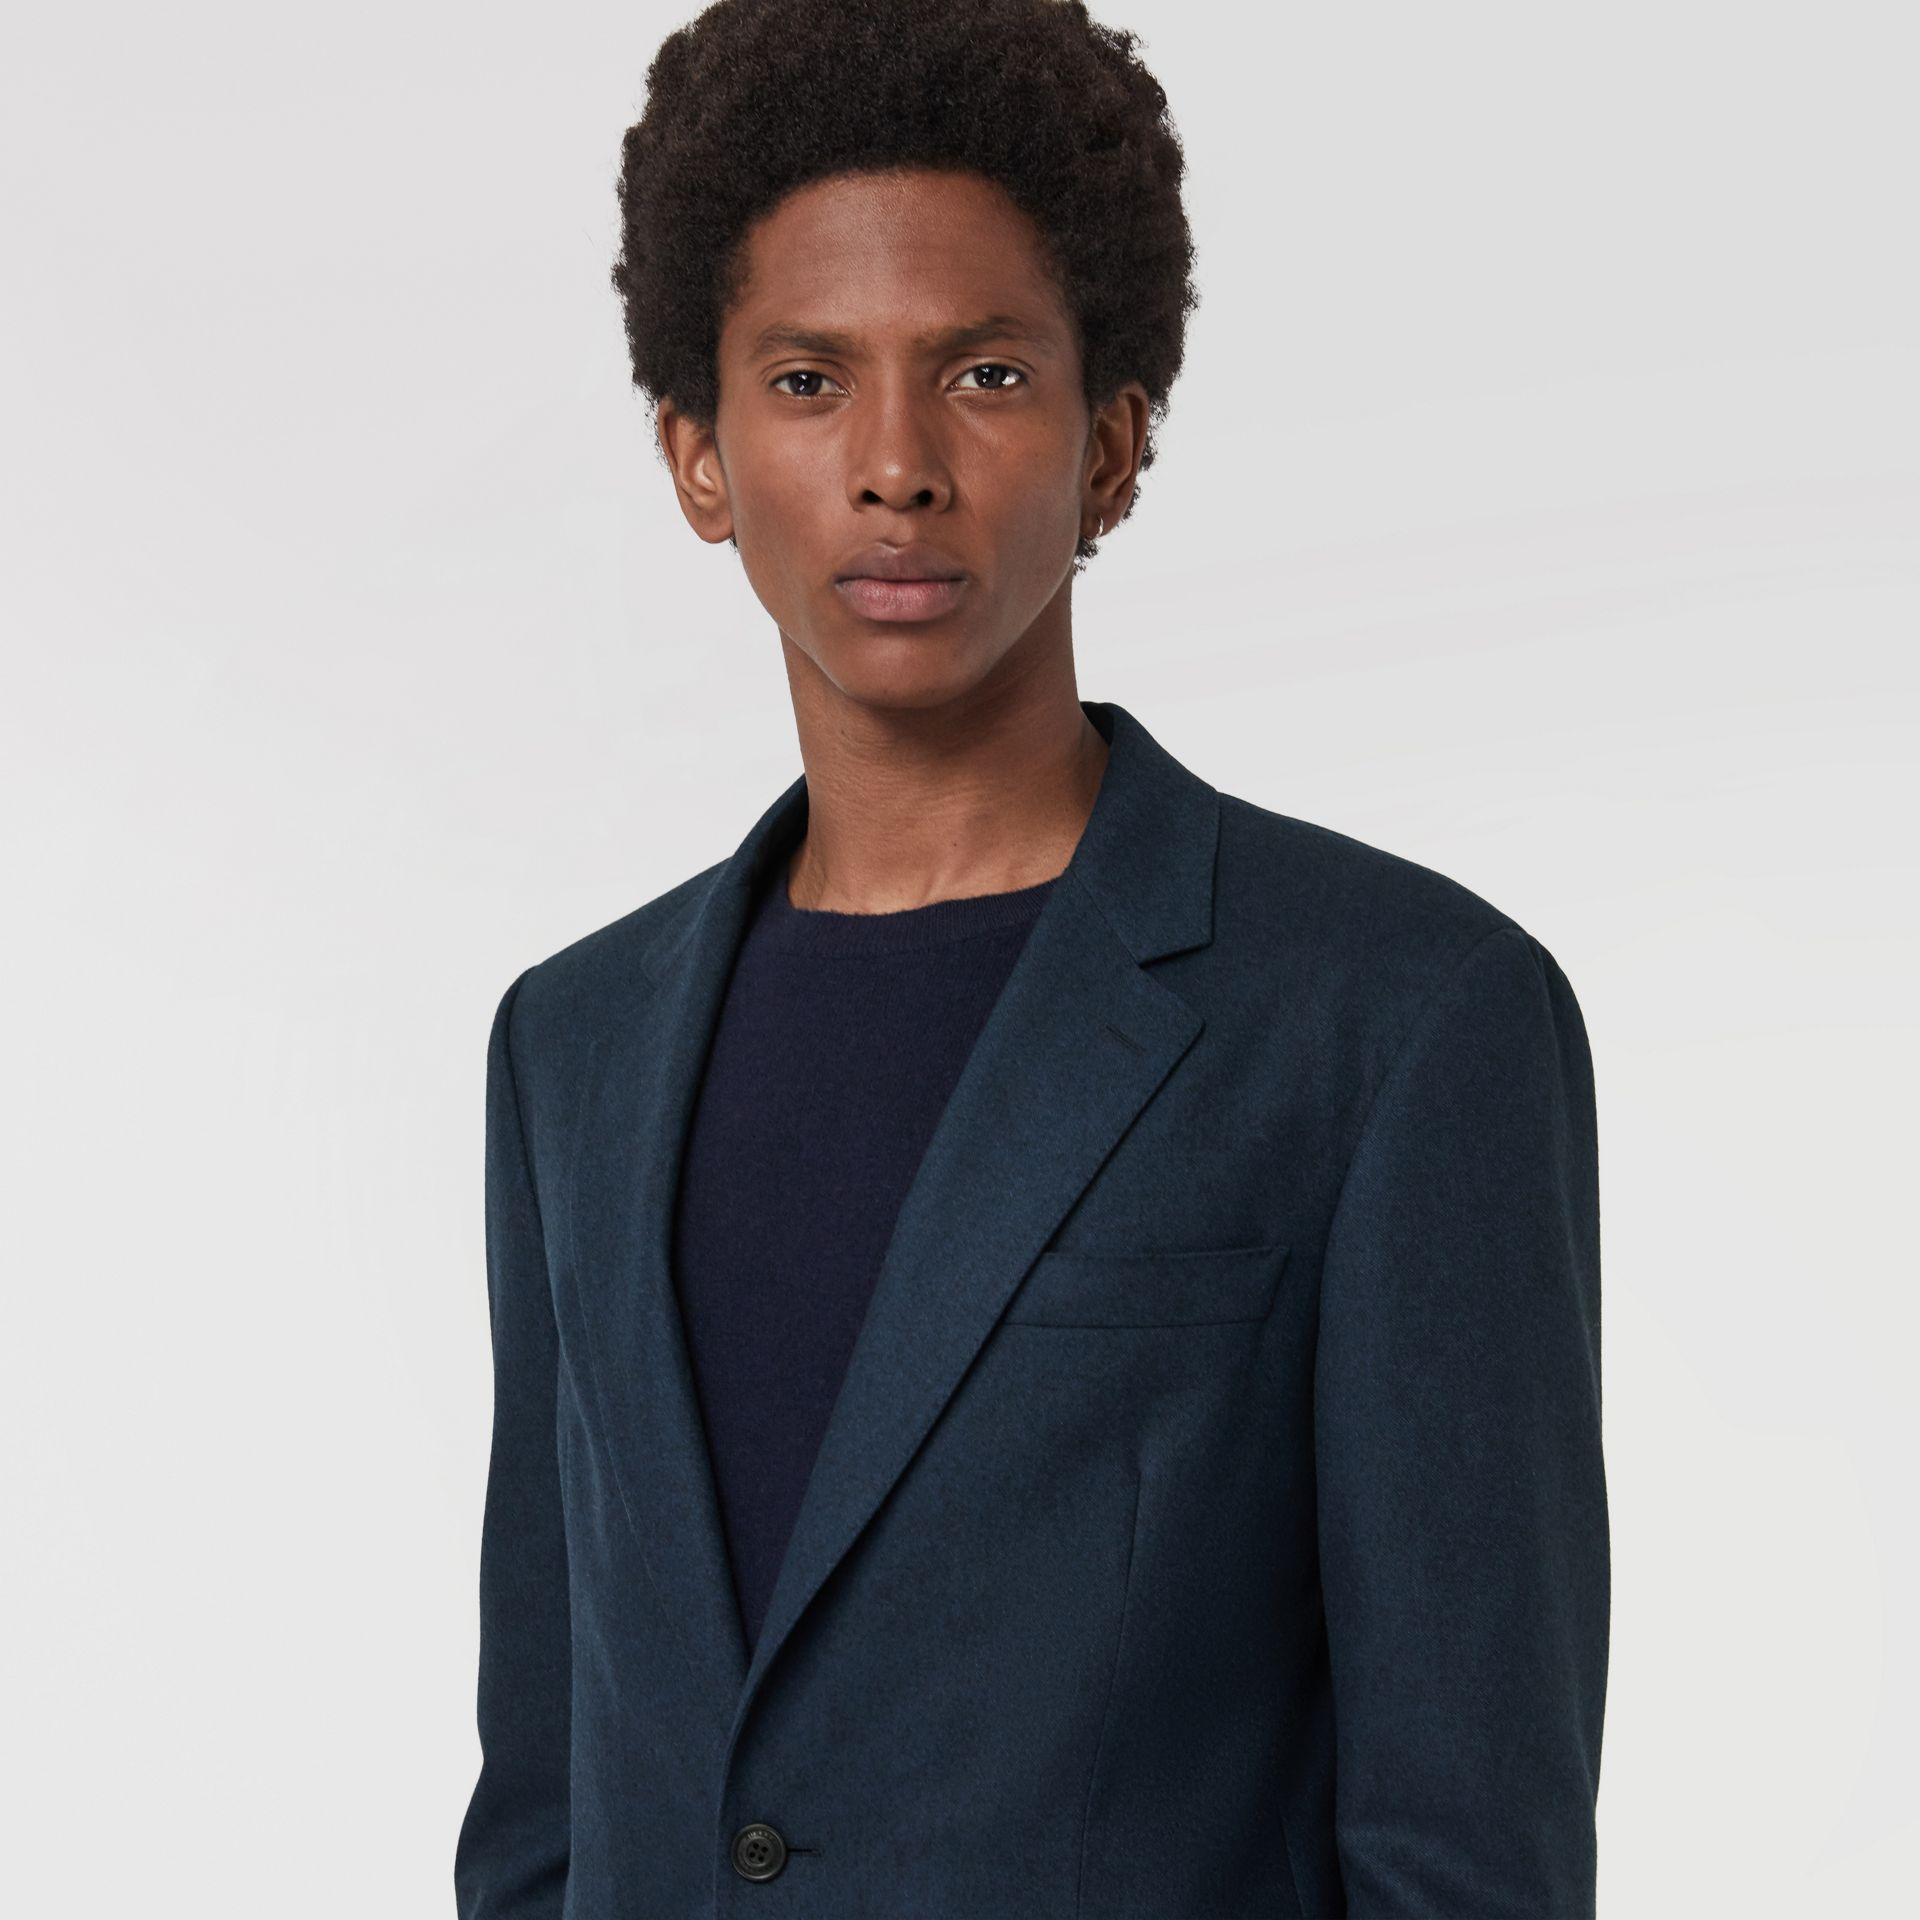 Classic Fit Wool Cashmere Tailored Jacket in Dark Teal - Men | Burberry Canada - gallery image 1